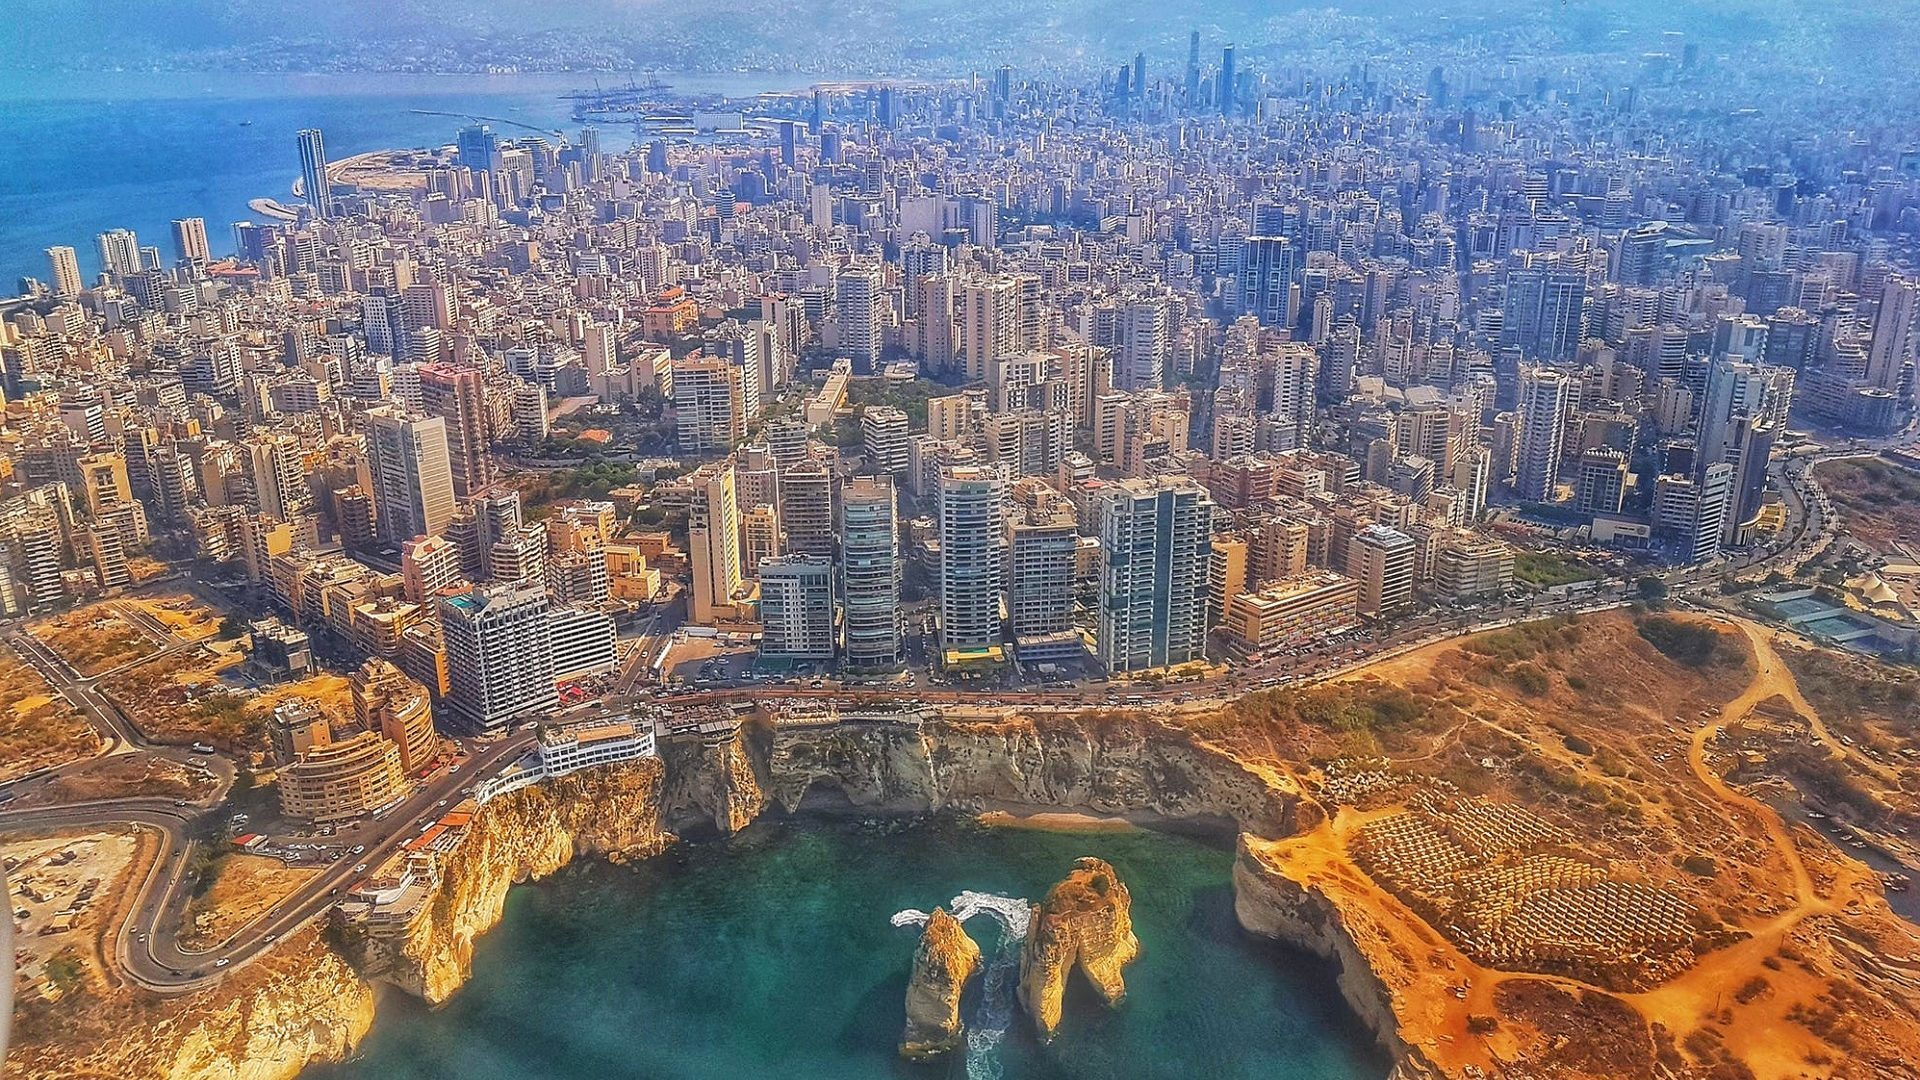 1920X1080beirut_pexels-photo-614628